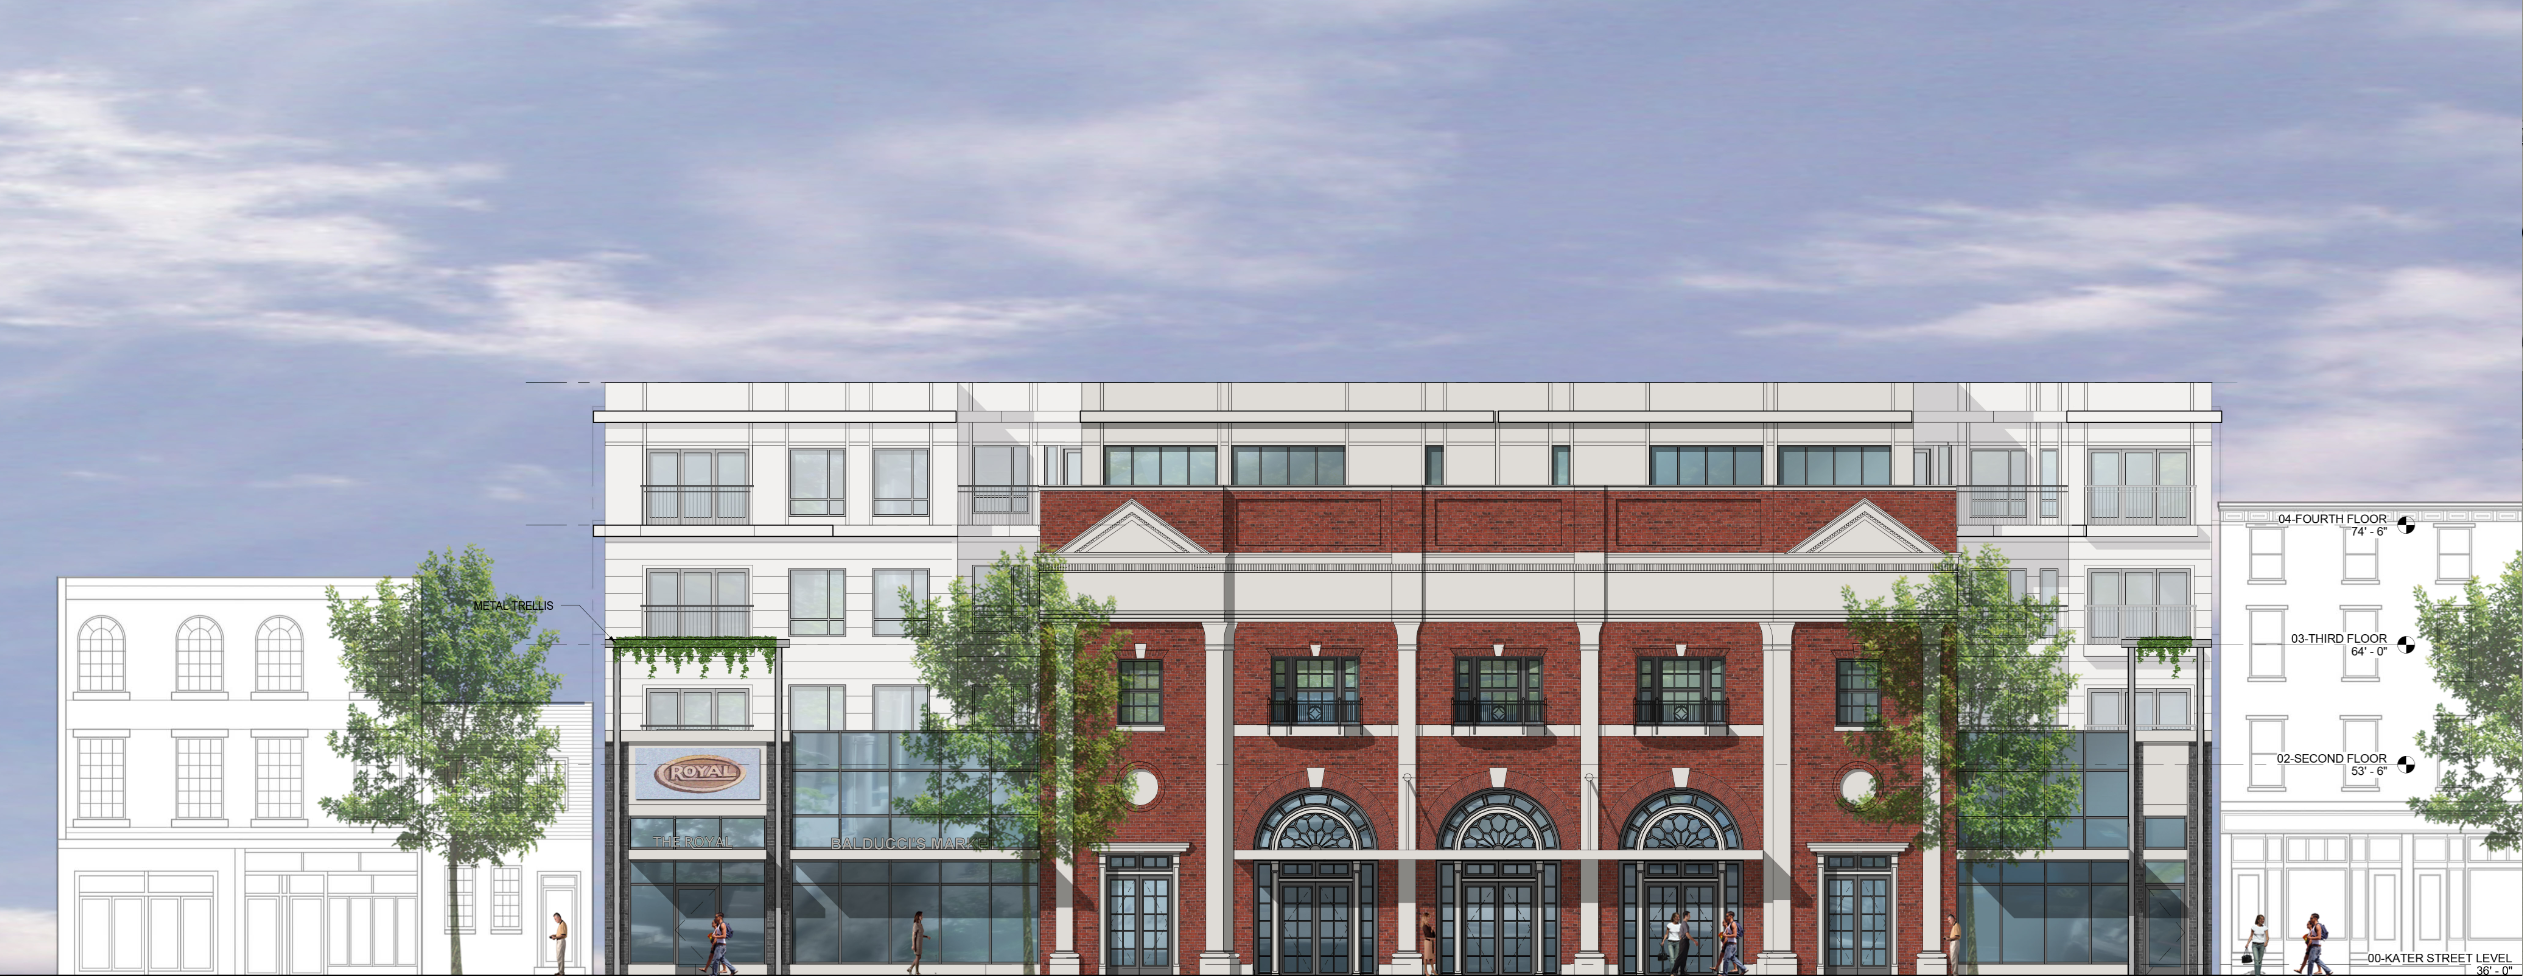 Proposed elevation of Royal Theater's historic South Street facade incorporated into a new building | J Davis Architects